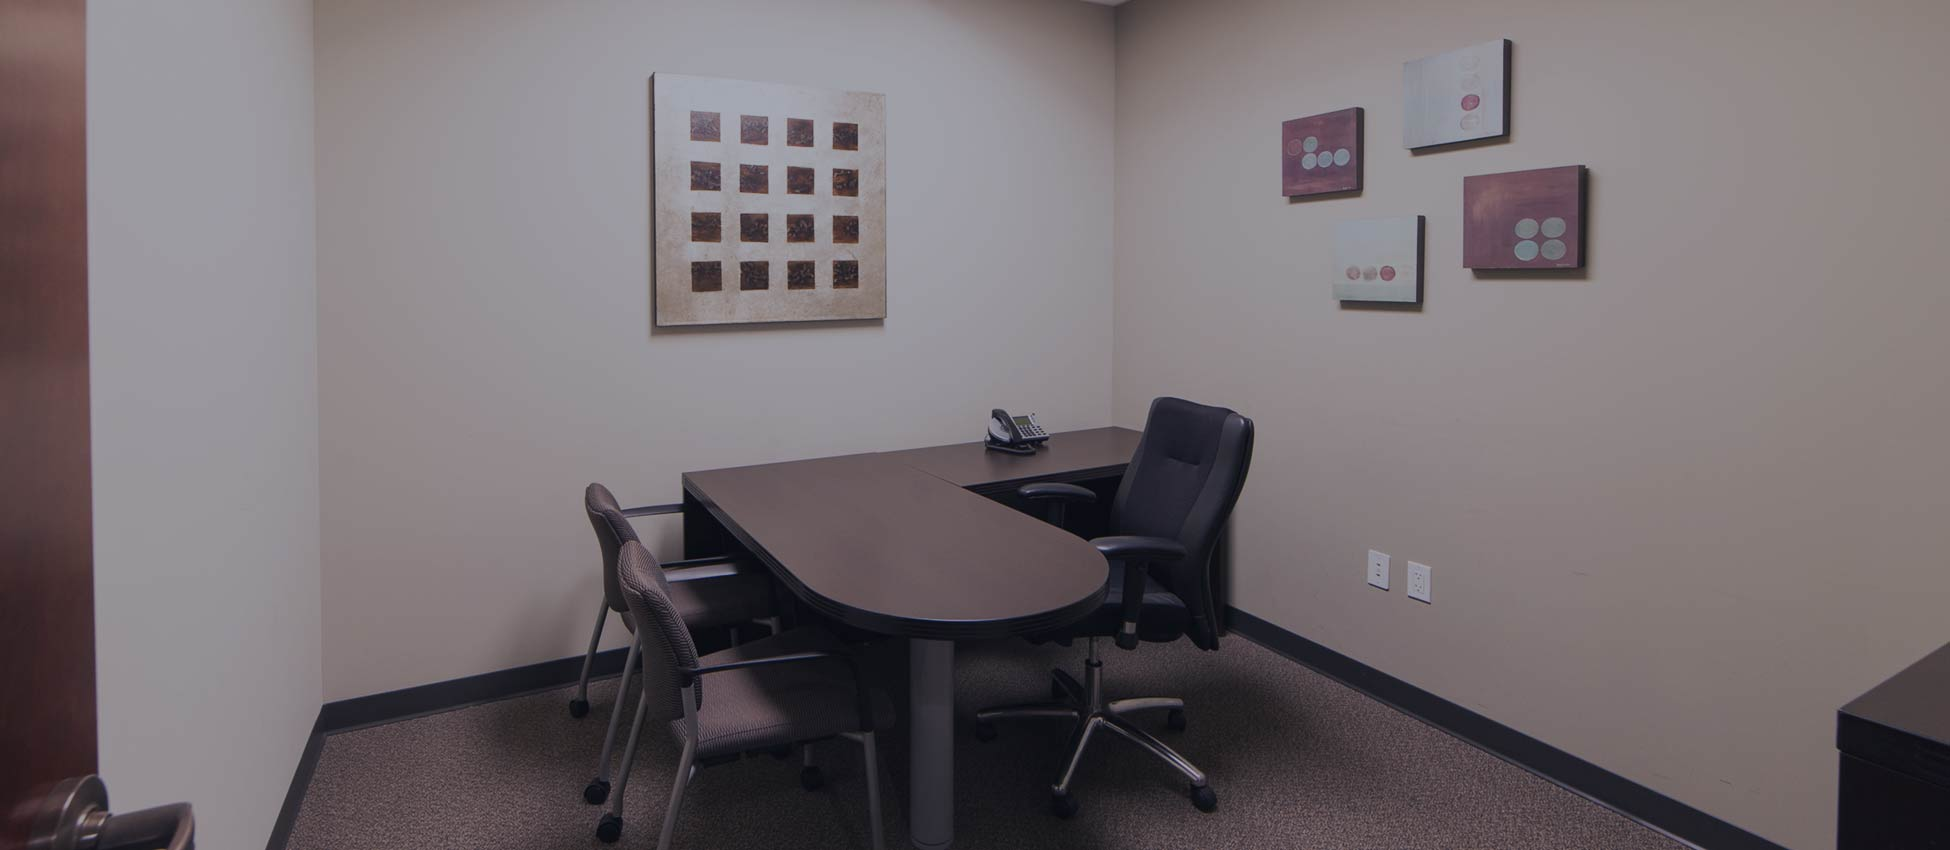 pacific-workplaces-carlsbad-office-space-private-office